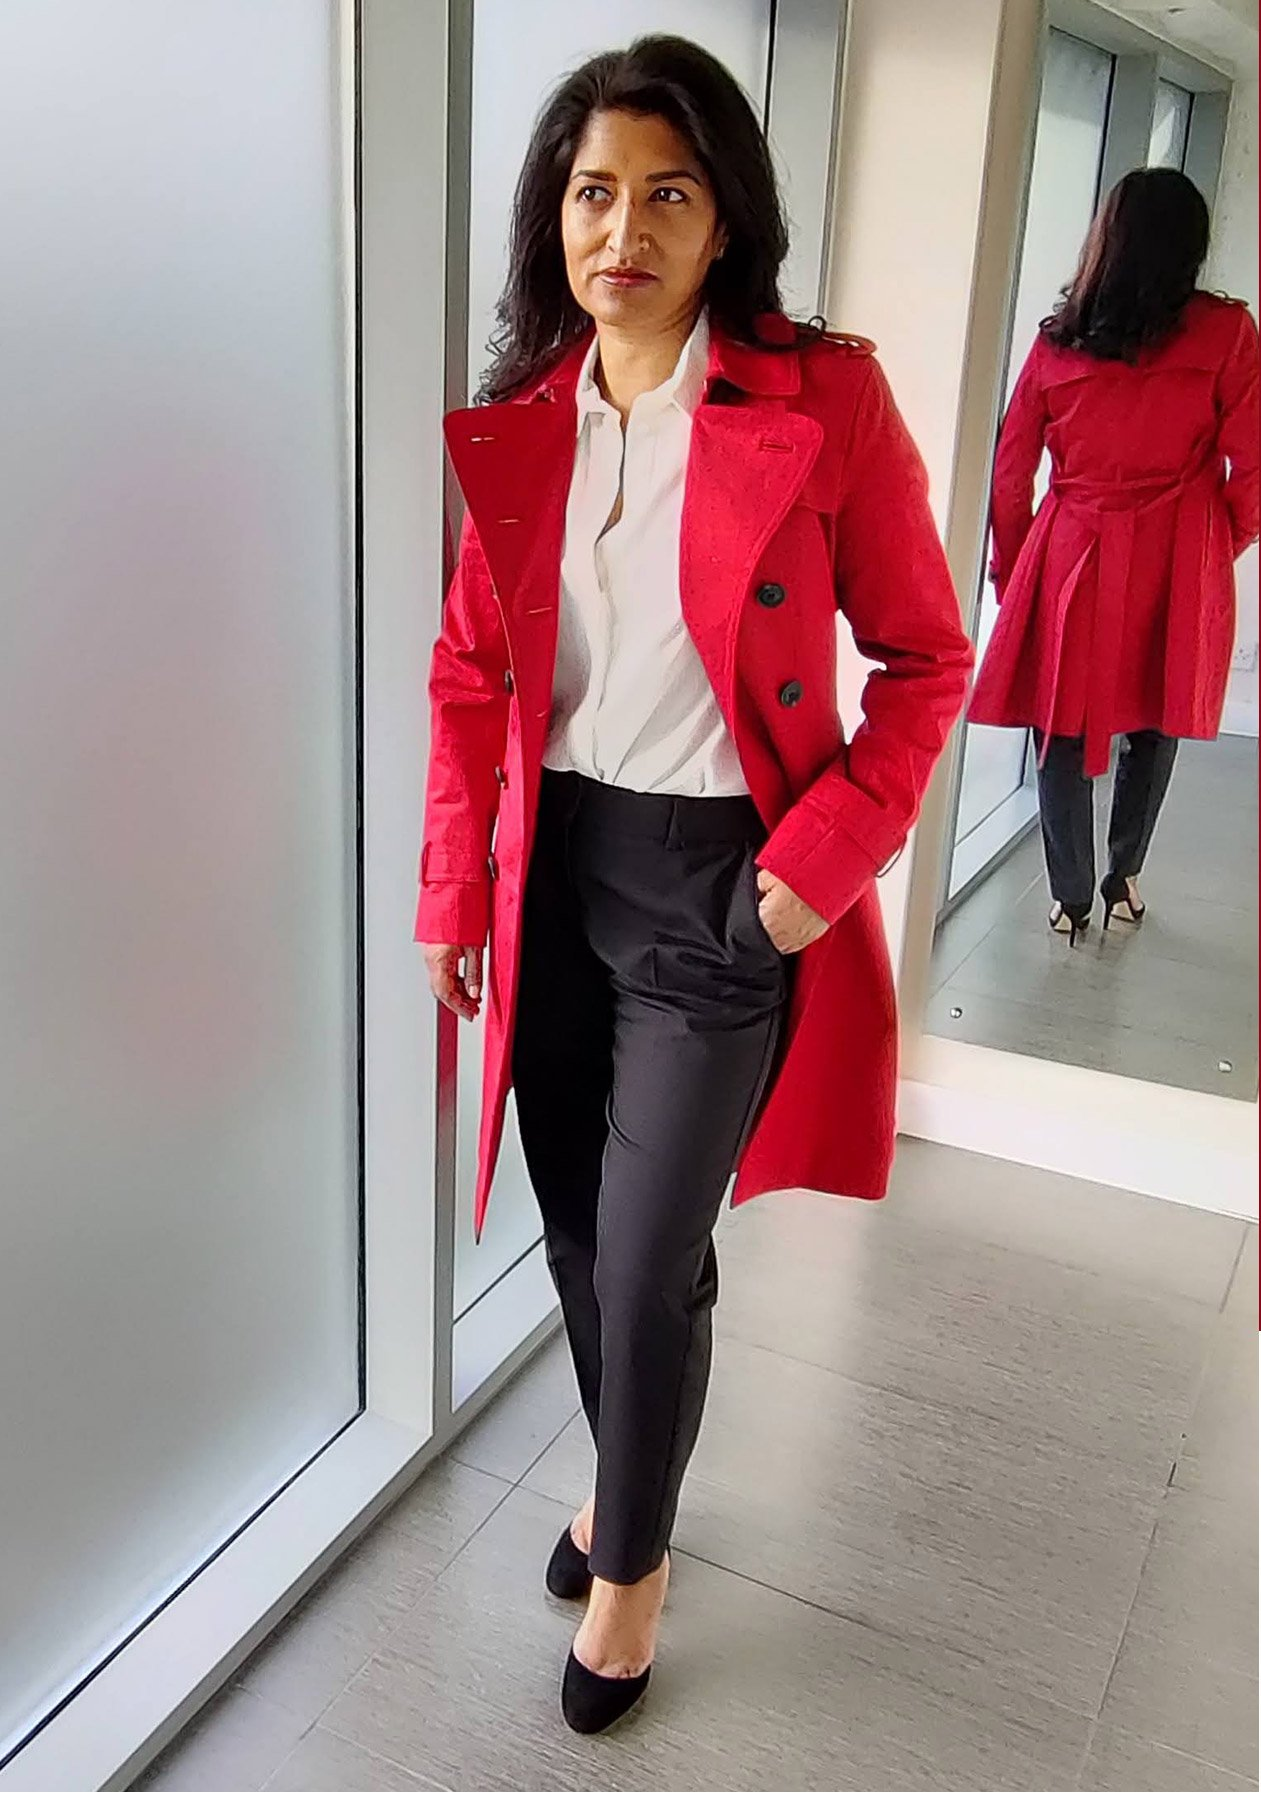 Photographed at home, fashion blogger Monika Mandal wears Hobbs petite red Saskia trench and Quin navy trousers.